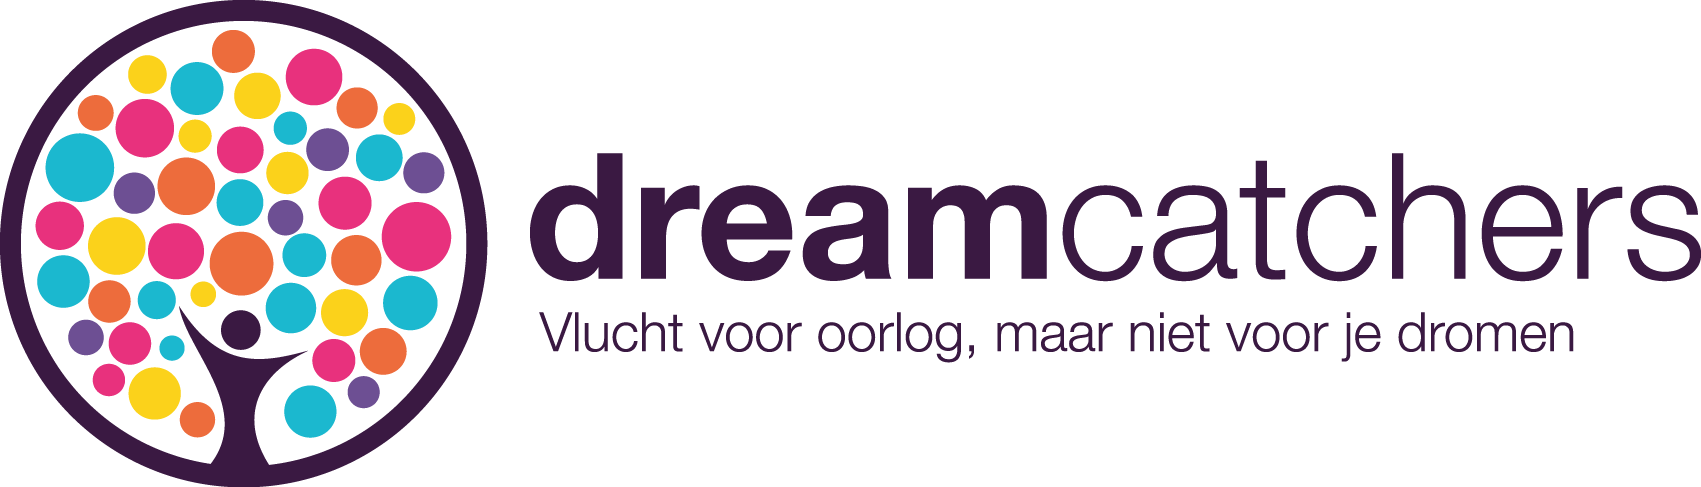 Stichting Dreamcatchers Nederland